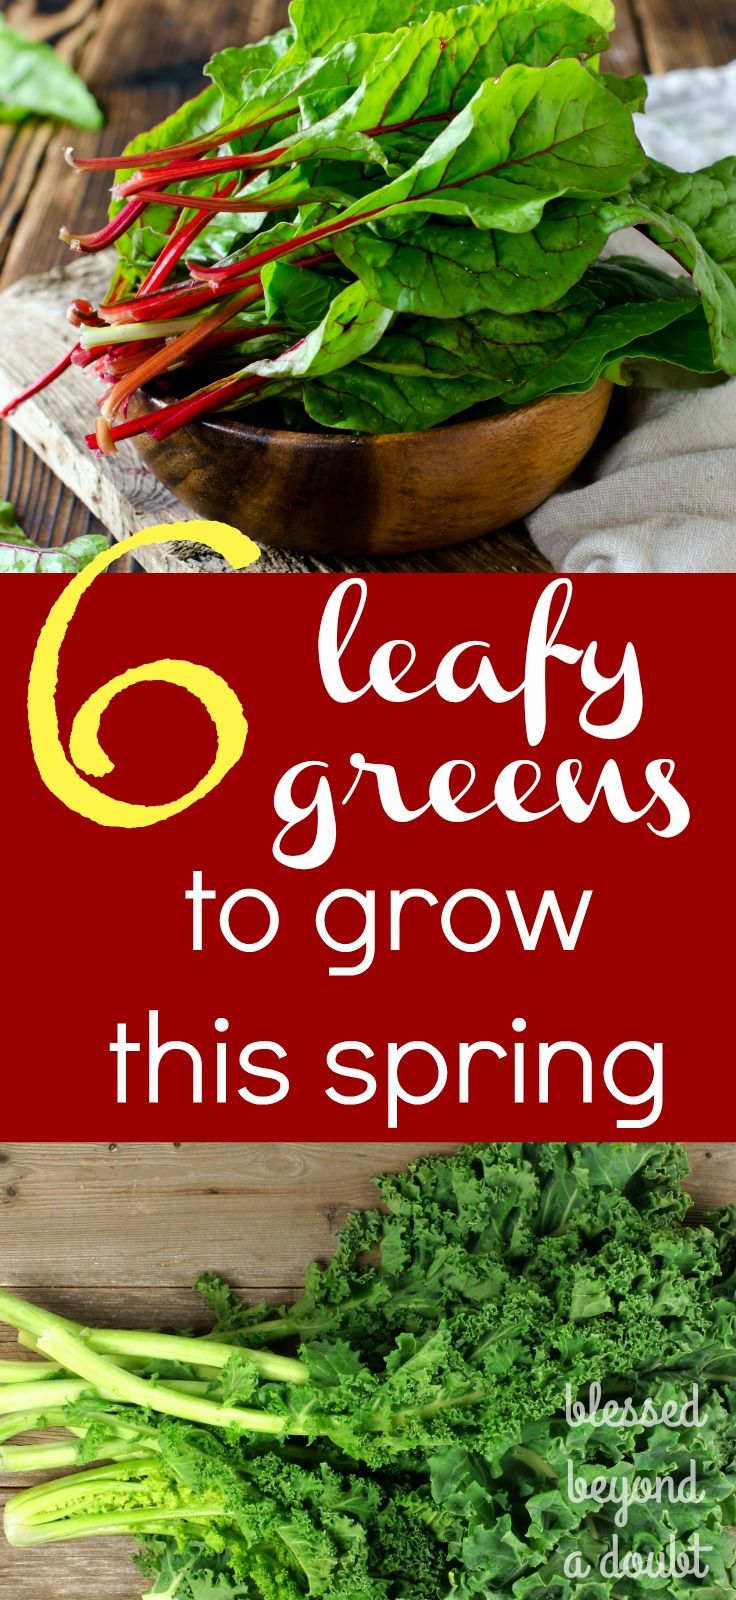 Here are 6 leafy greens you should grow this spring. I'm in love with #2. It's my new favorite.